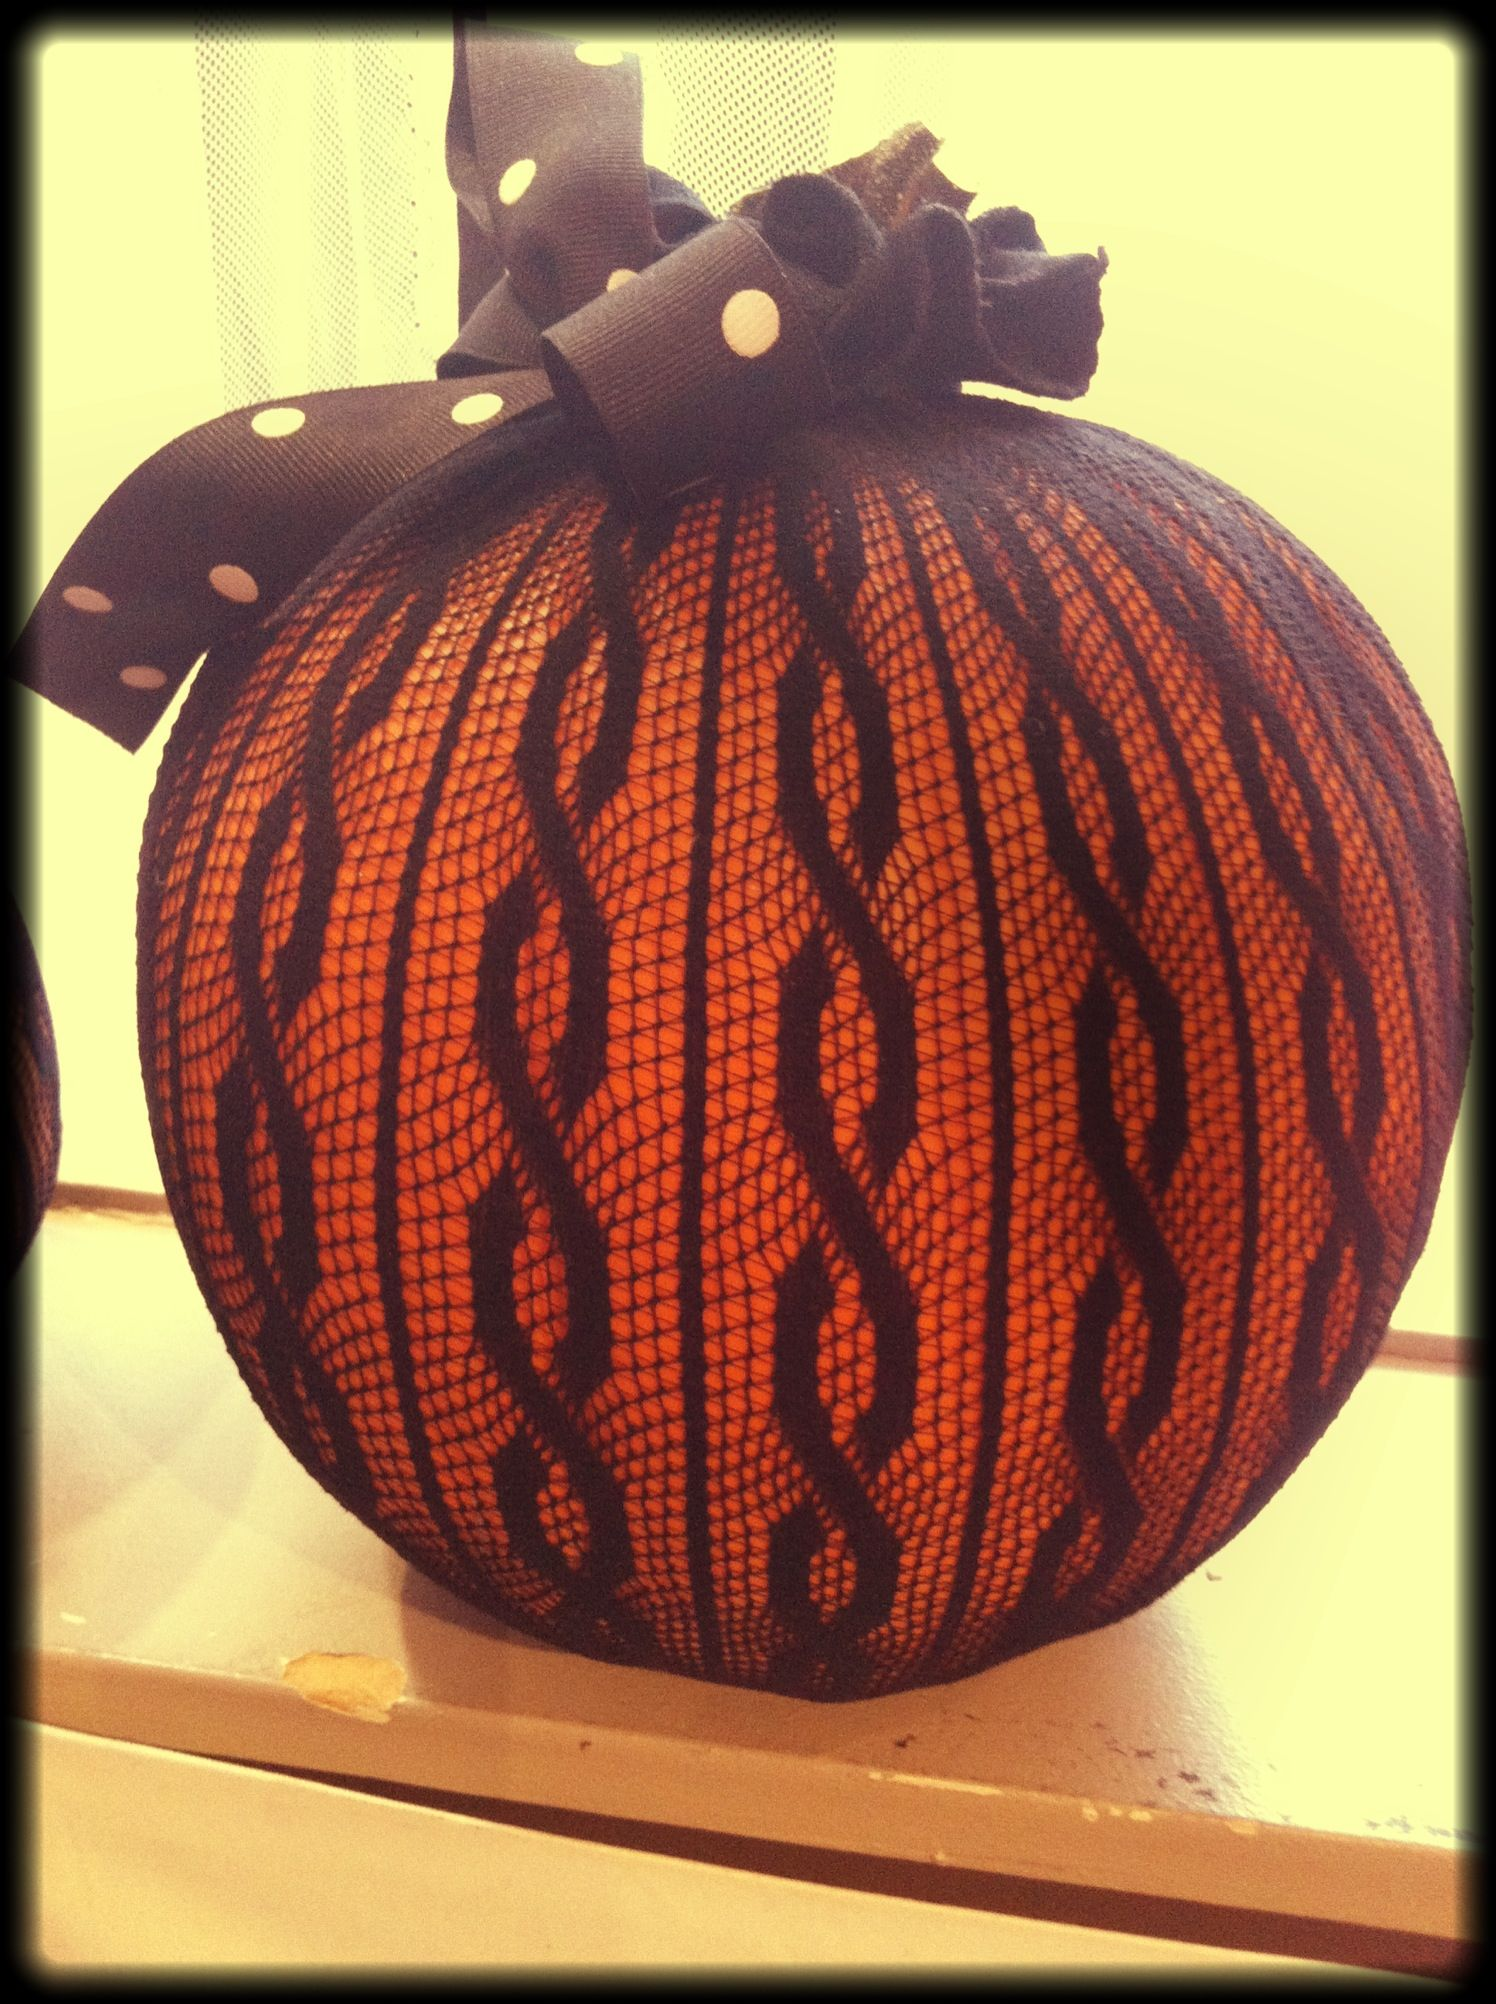 Fashion forward pumpkin decor pull a pair of tights over a pumpkin